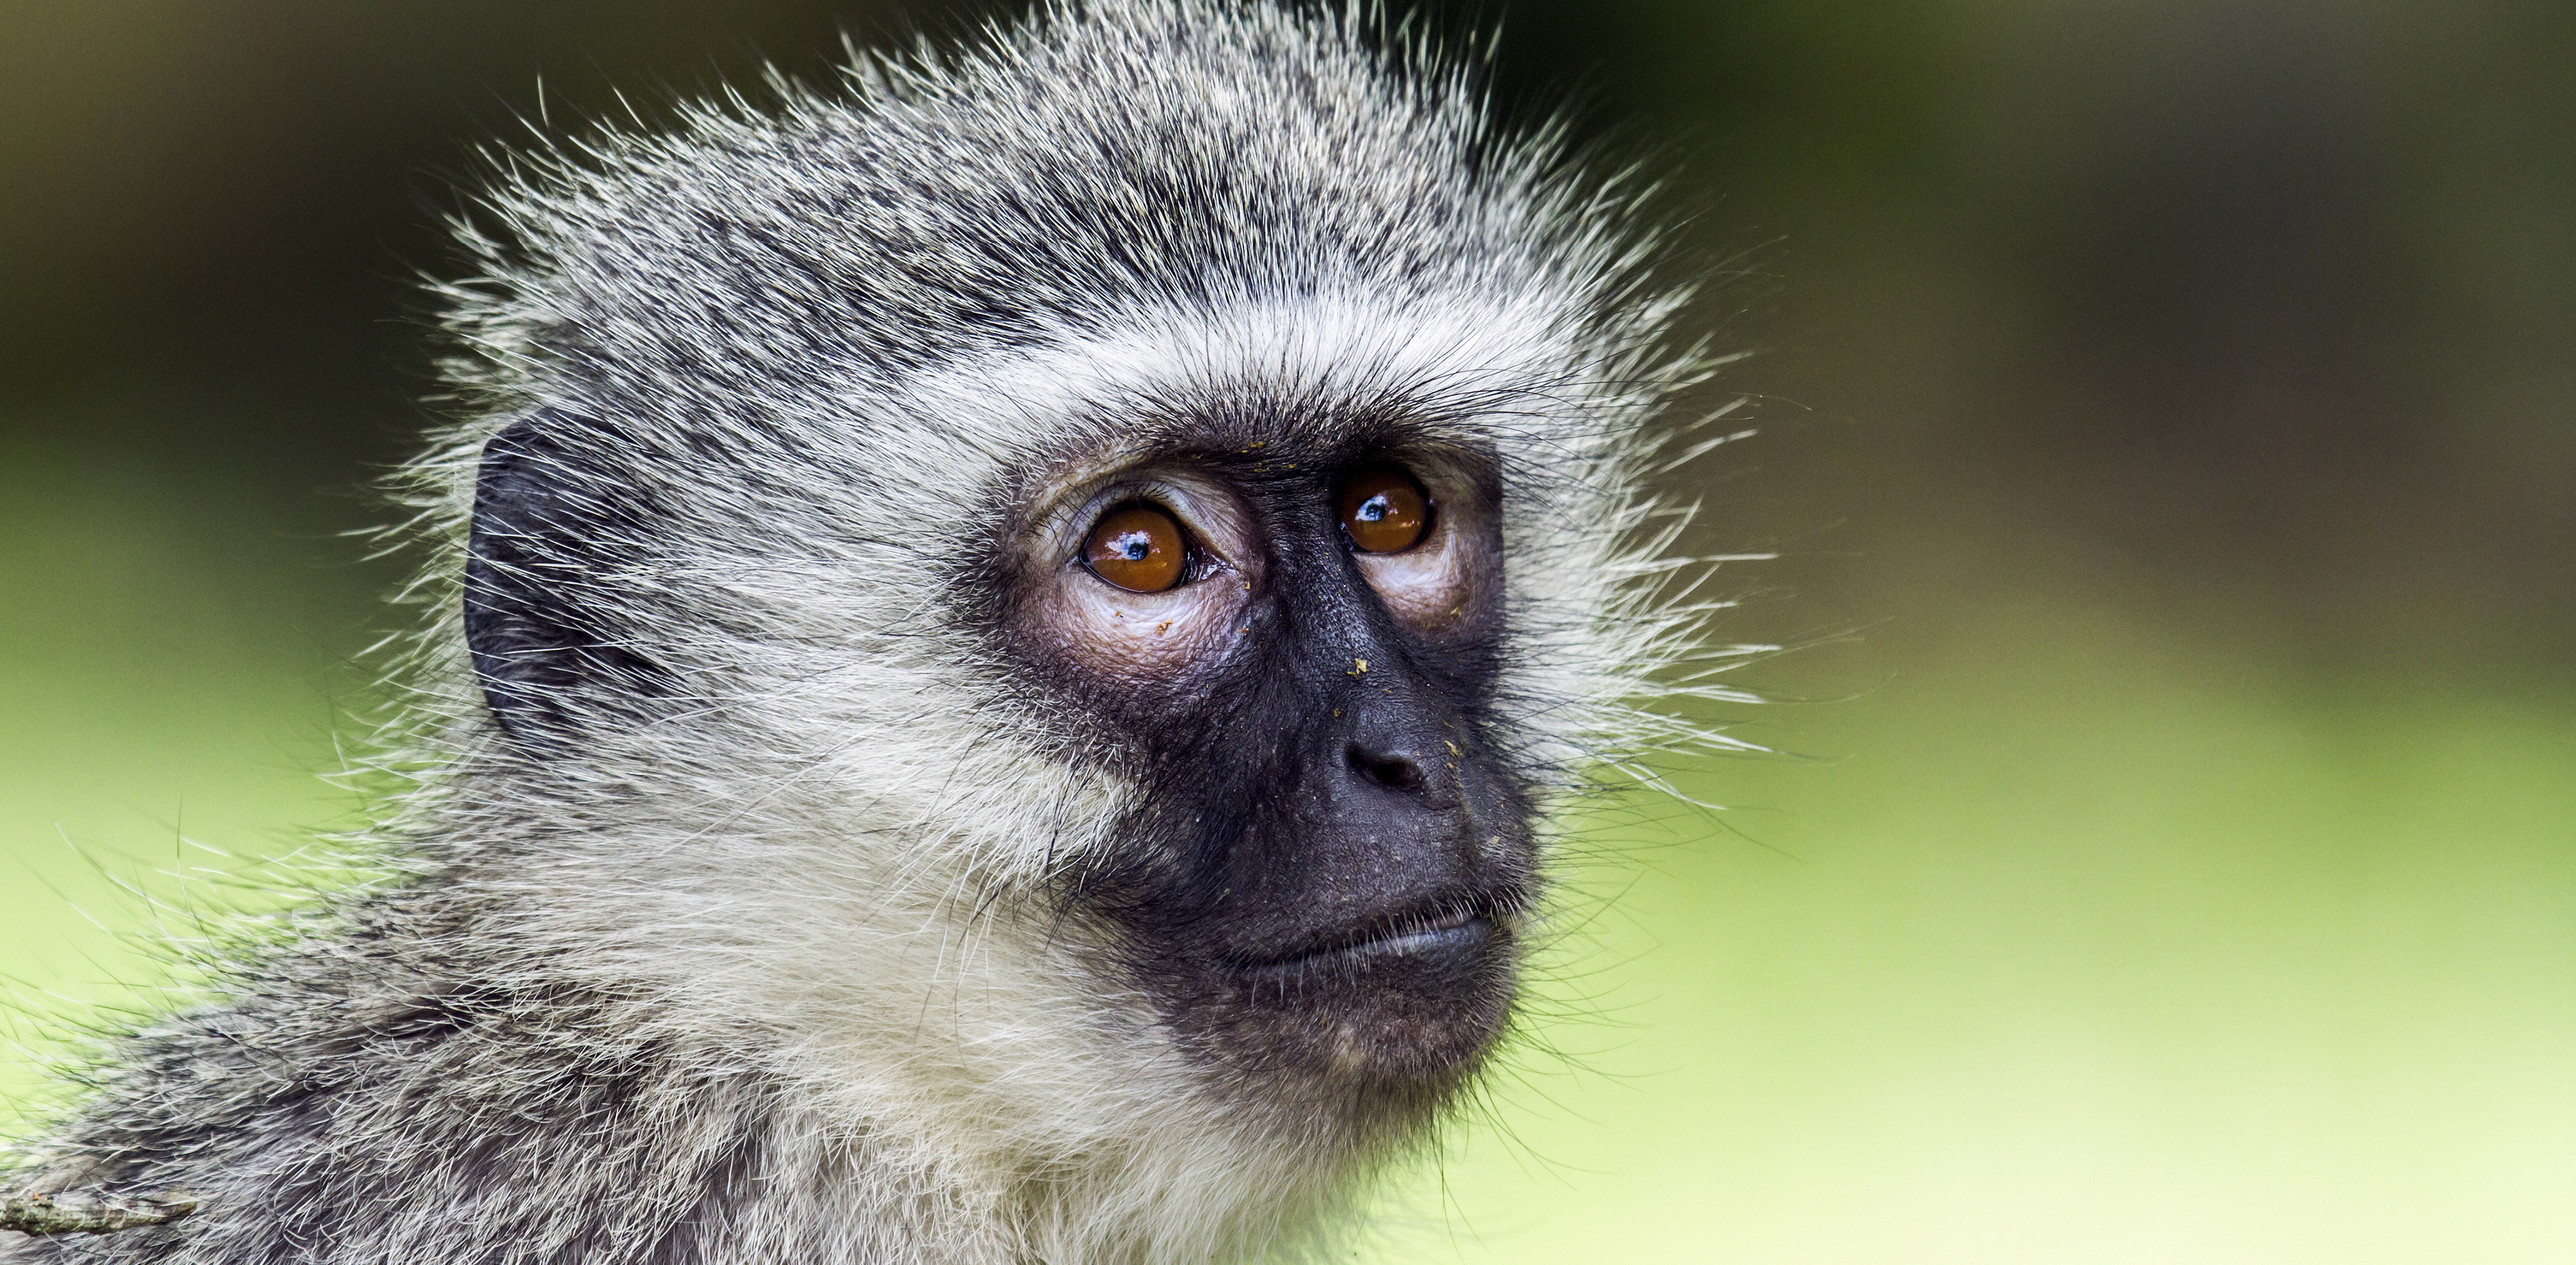 Vervet monkey photo